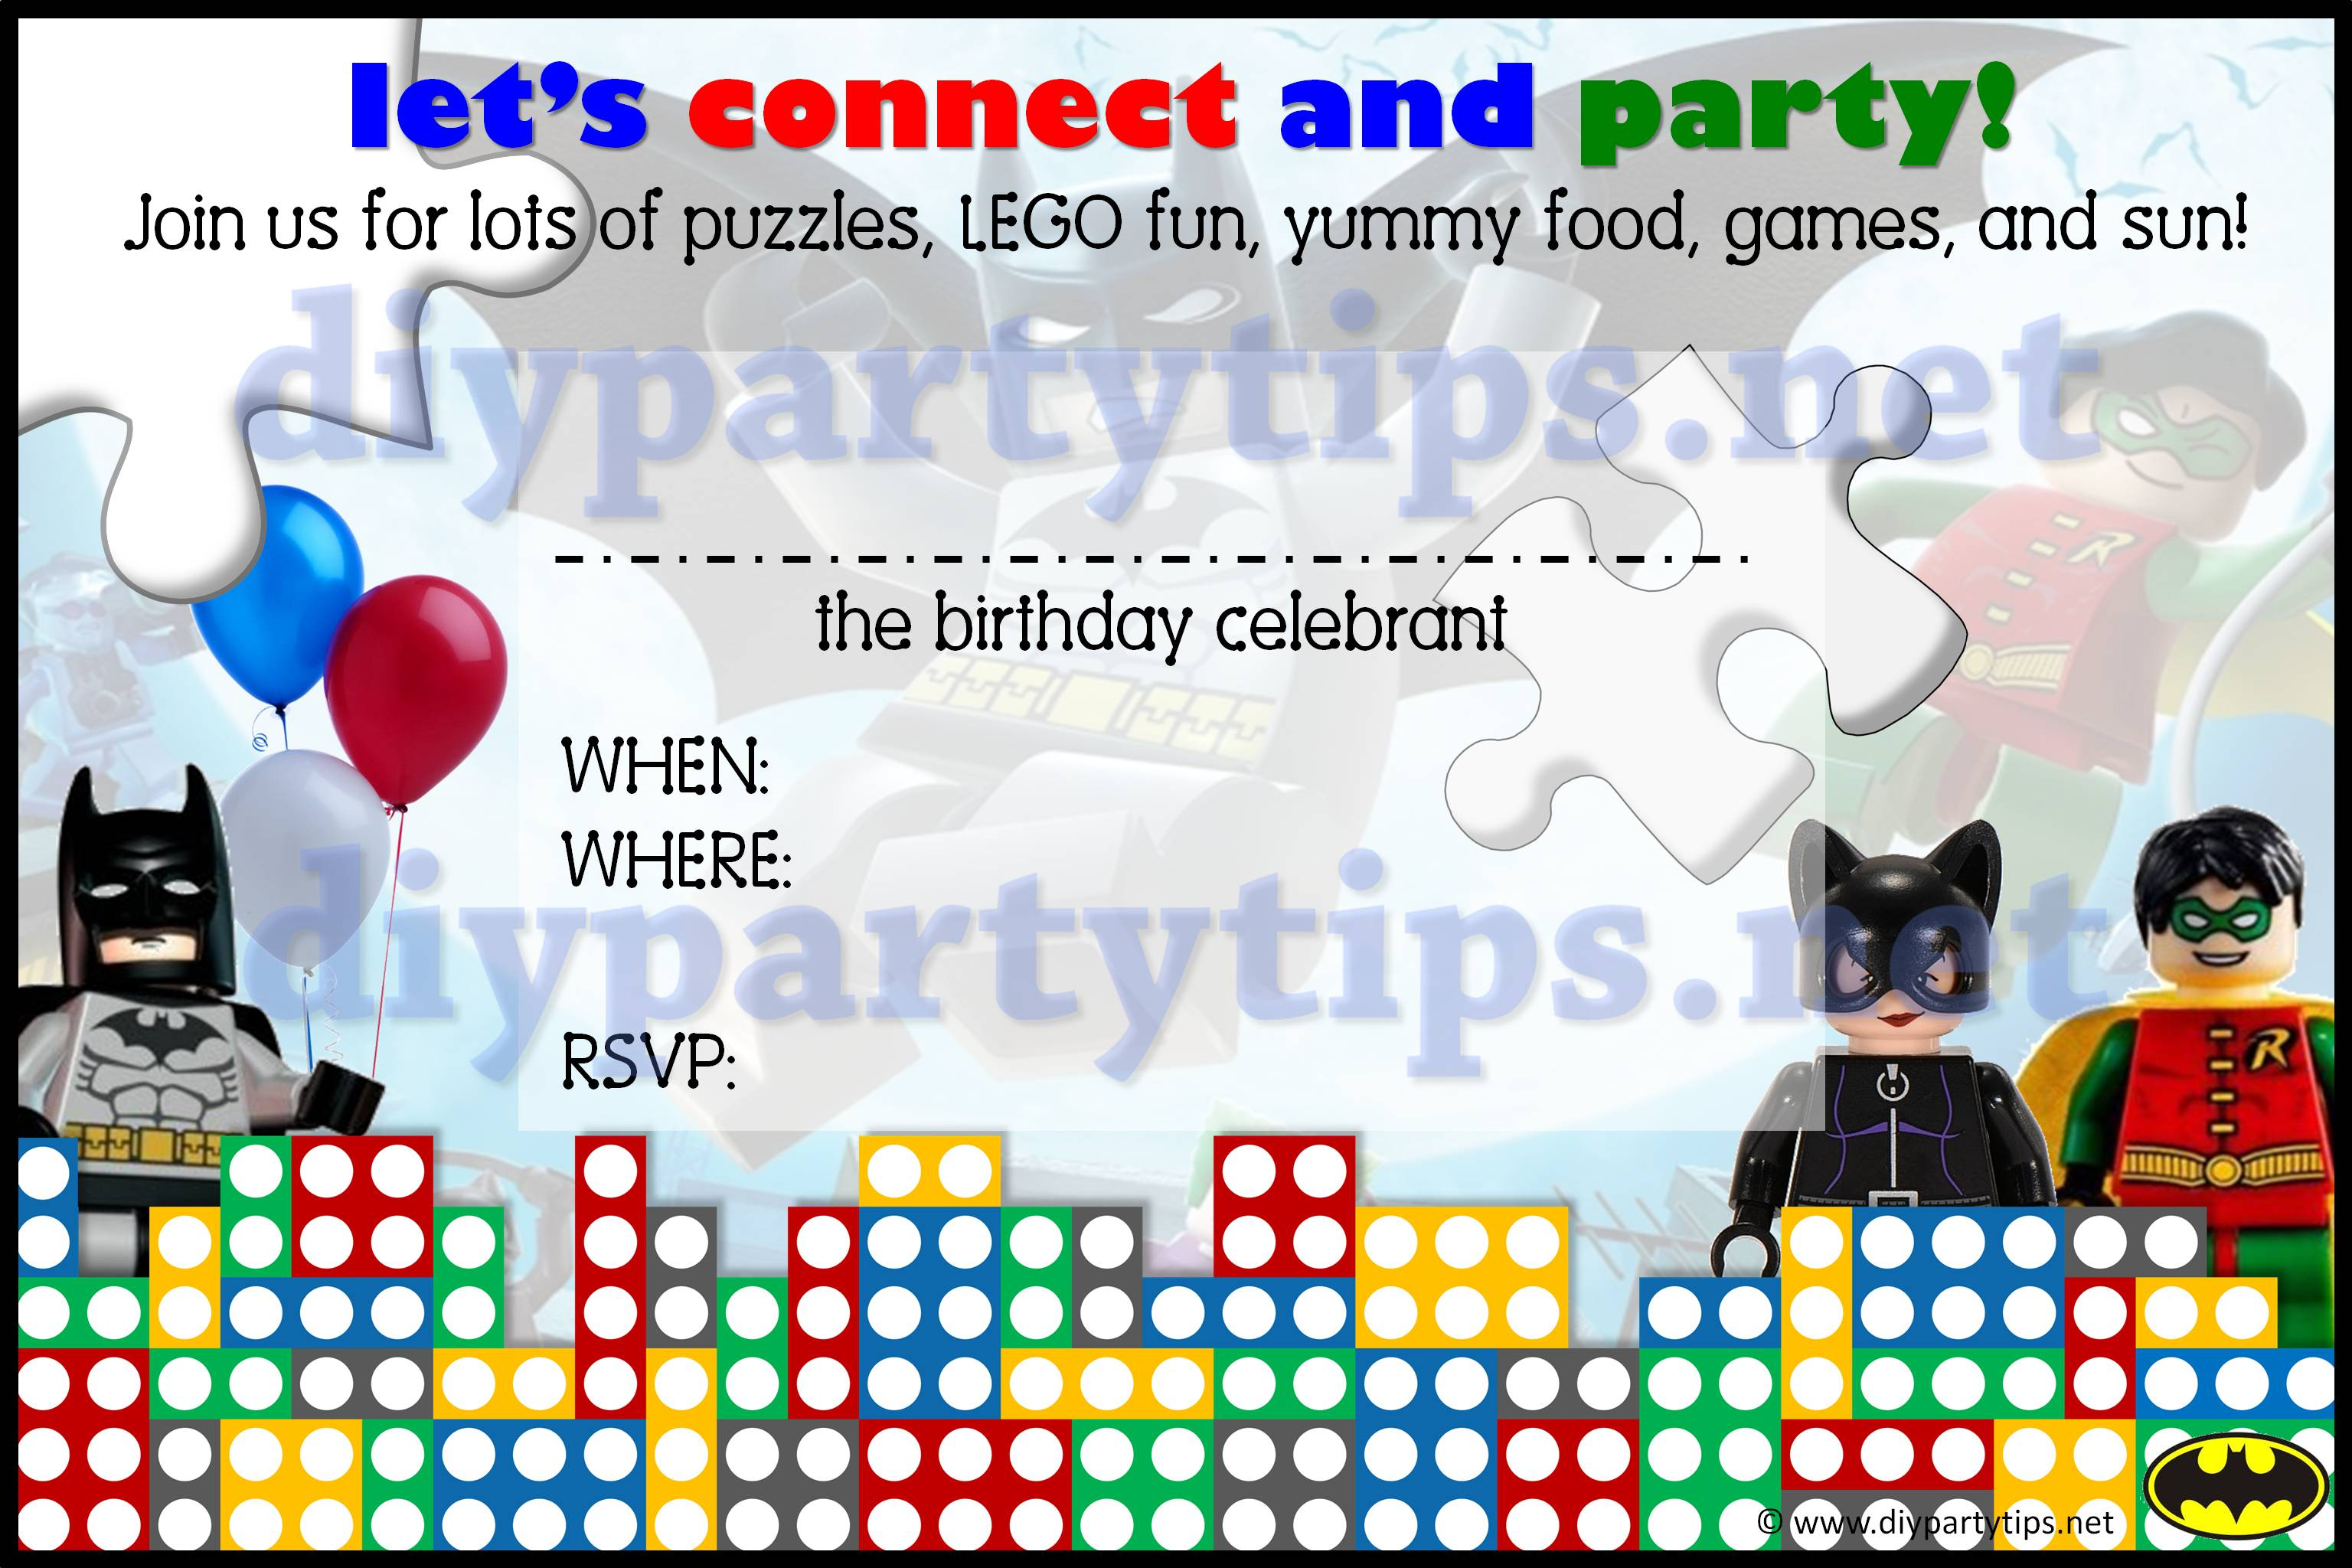 FREE PRINTABLE Lego Party Invitation Lolas DIY Party Tips - Free printable birthday party invitations templates